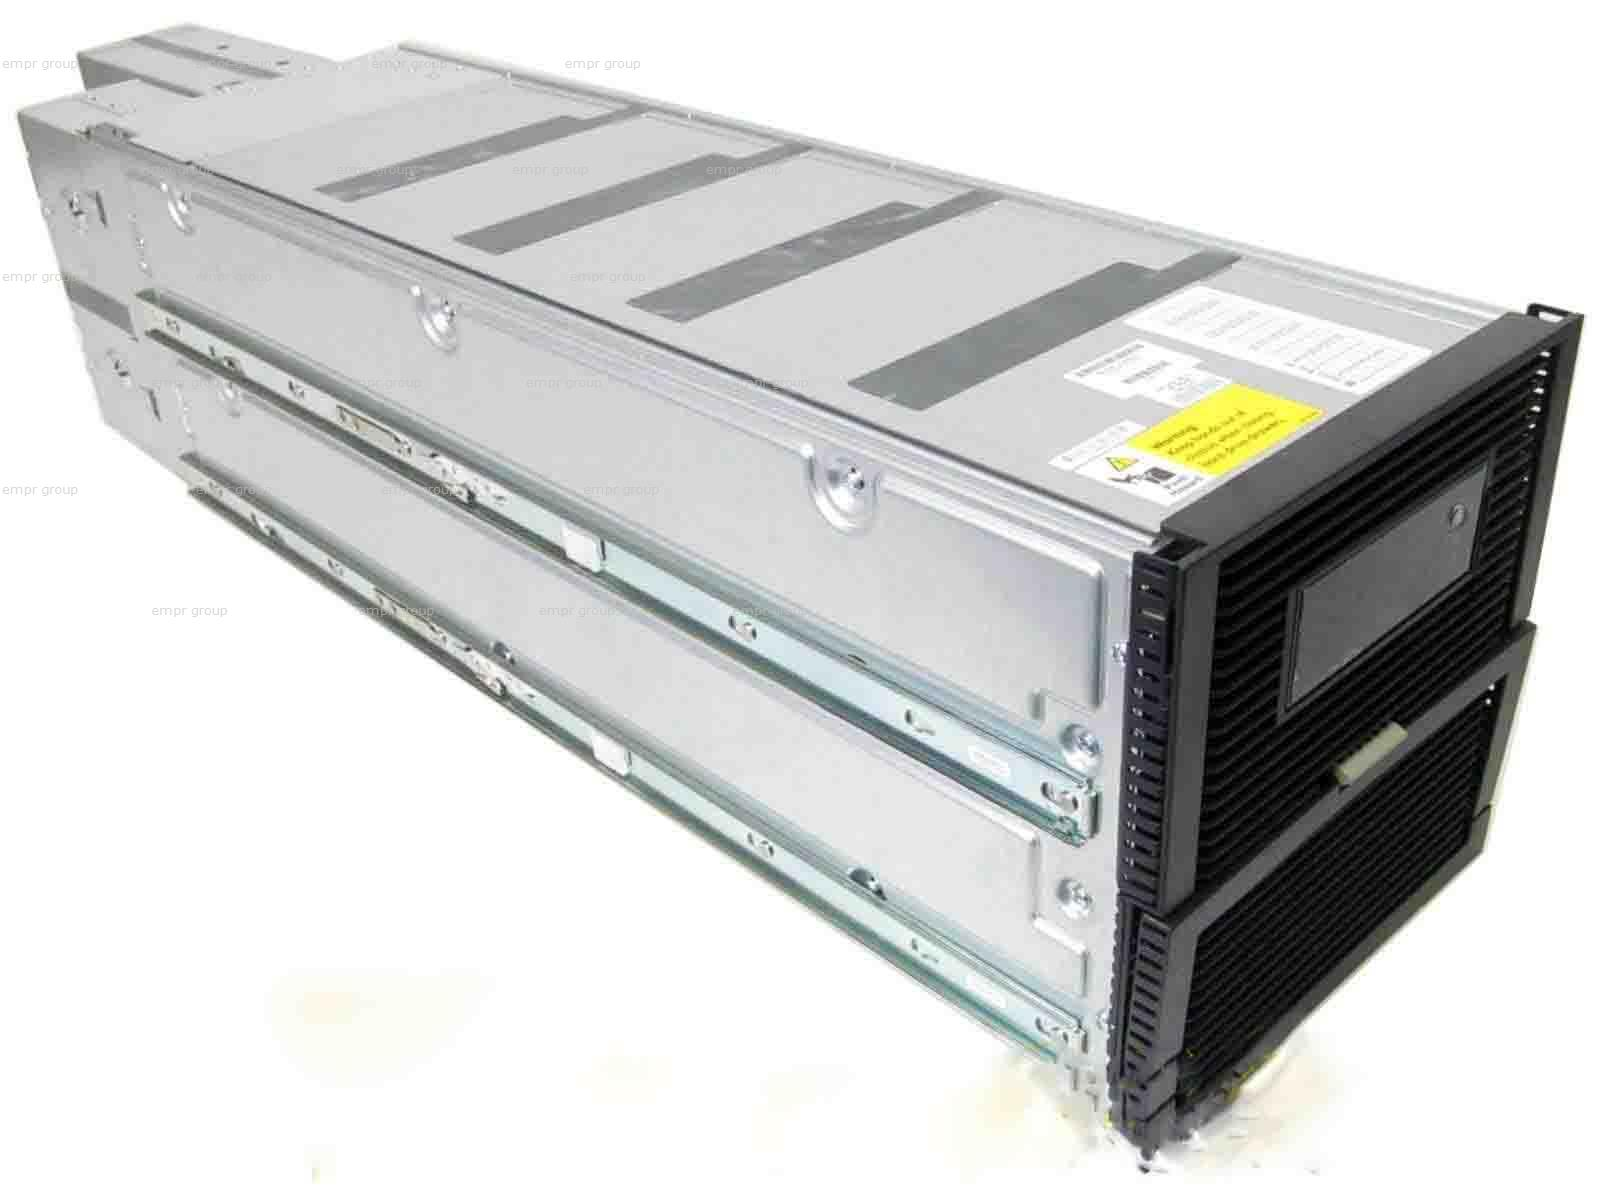 HPE Part 455976-001 Hard drive drawer with hard drive backplane and cables